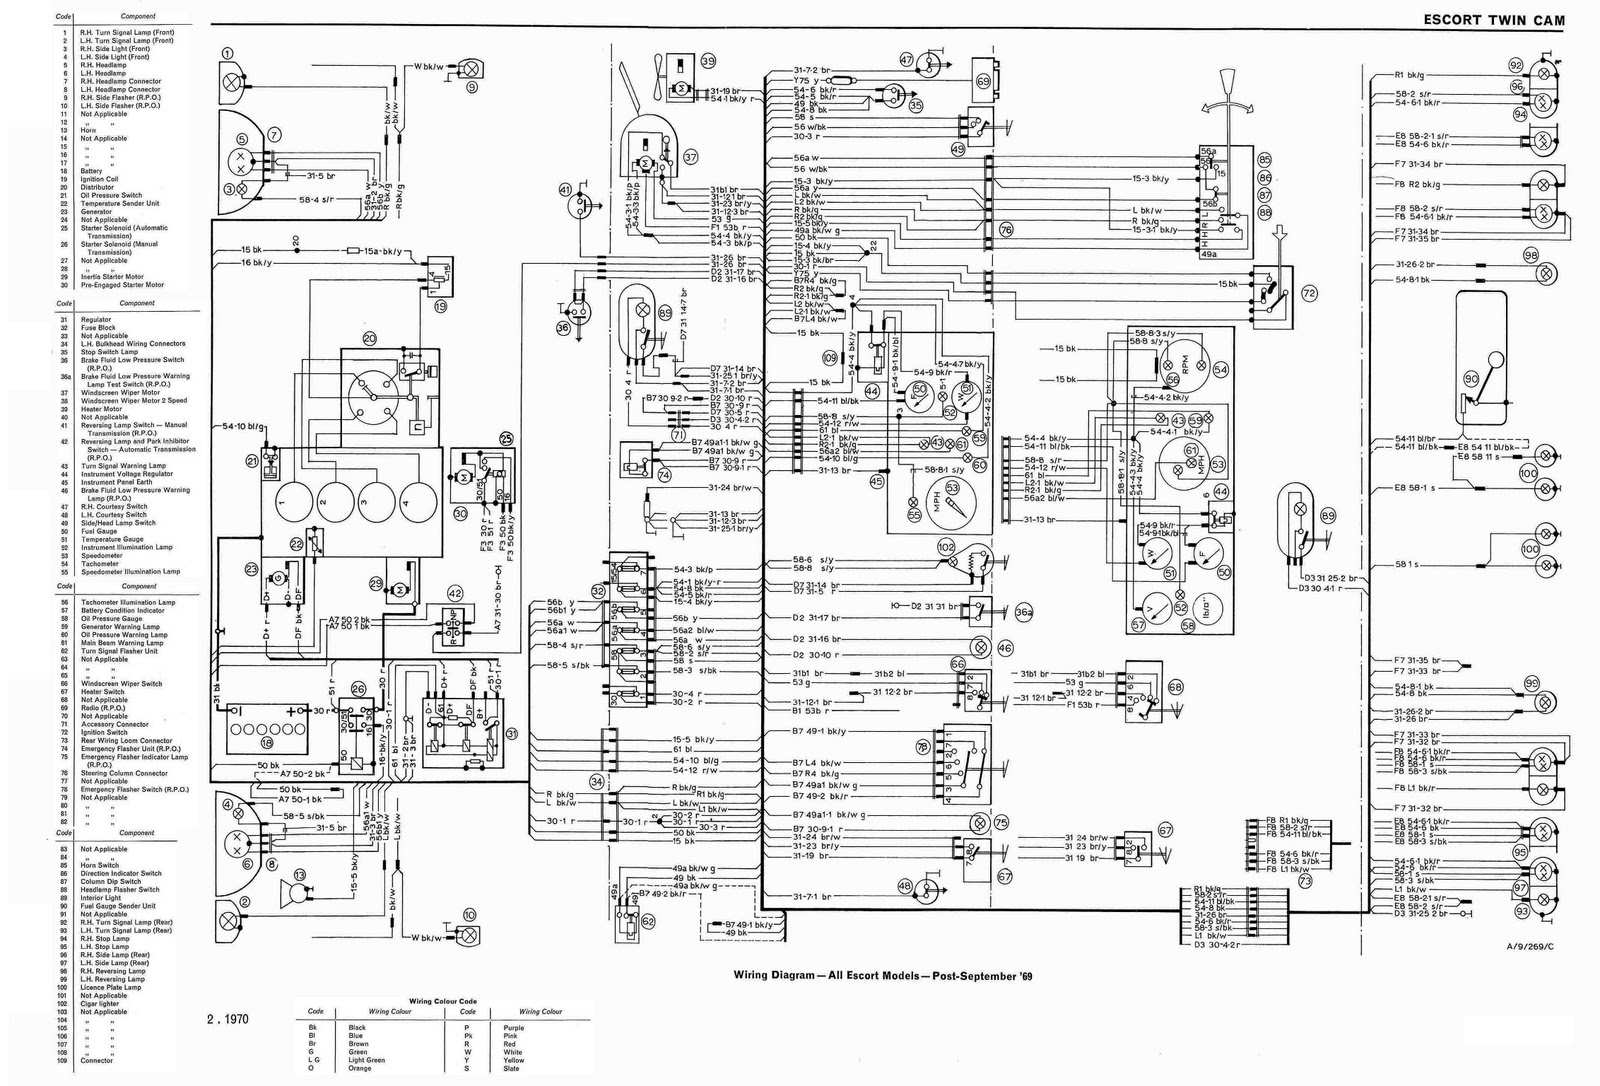 1969 f100 wiring diagram wiring diagram expert 1969 ford f100 tail light wiring  diagram 1969 f100 wiring diagram